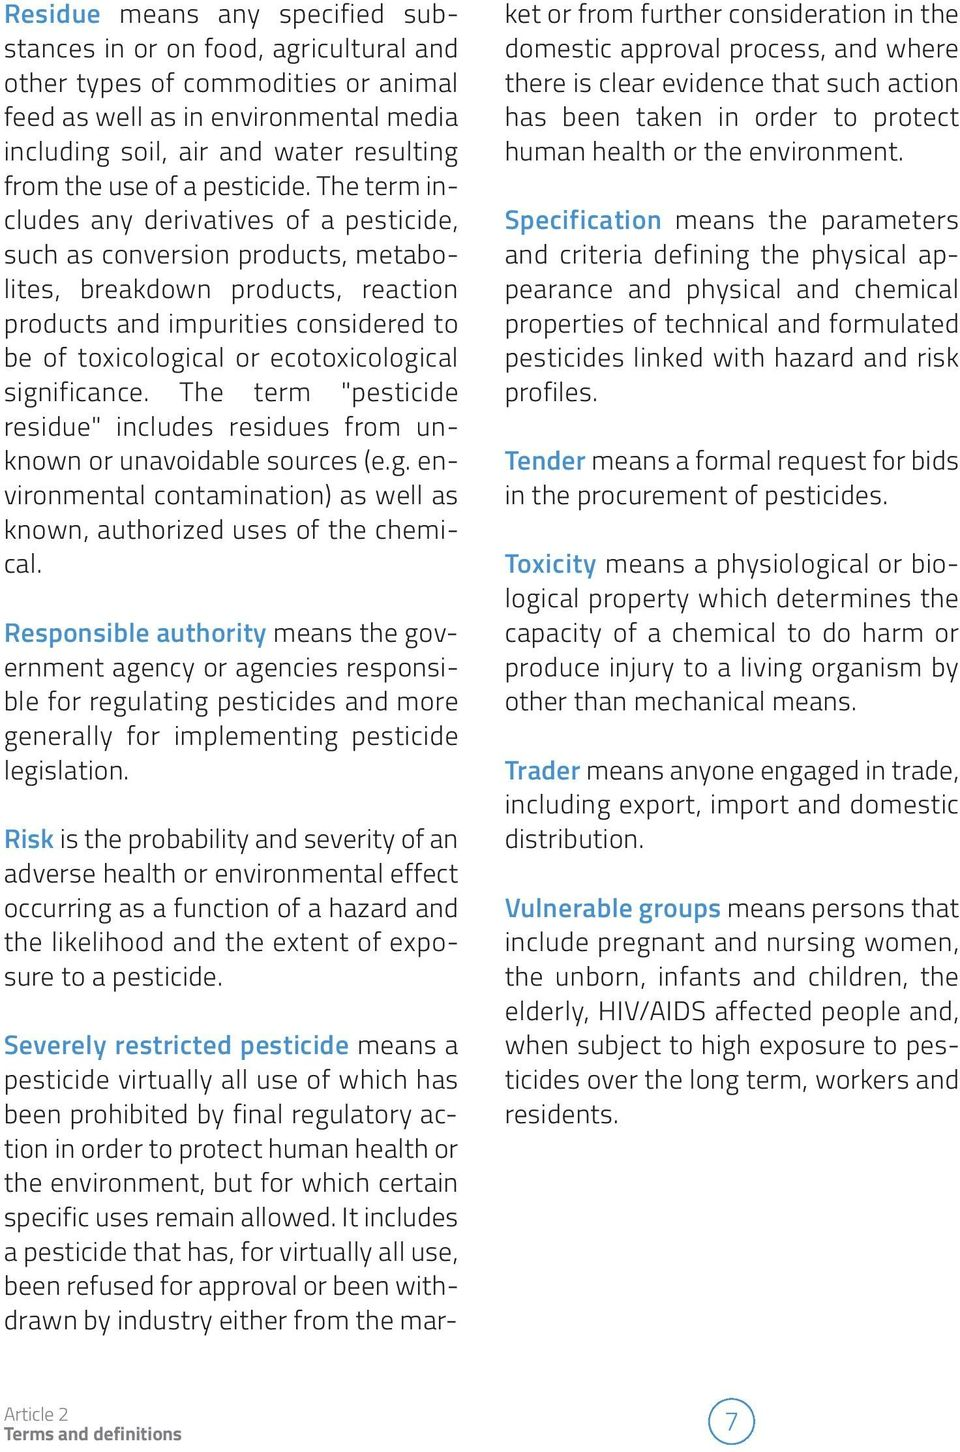 The term includes any derivatives of a pesticide, such as conversion products, metabolites, breakdown products, reaction products and impurities considered to be of toxicological or ecotoxicological